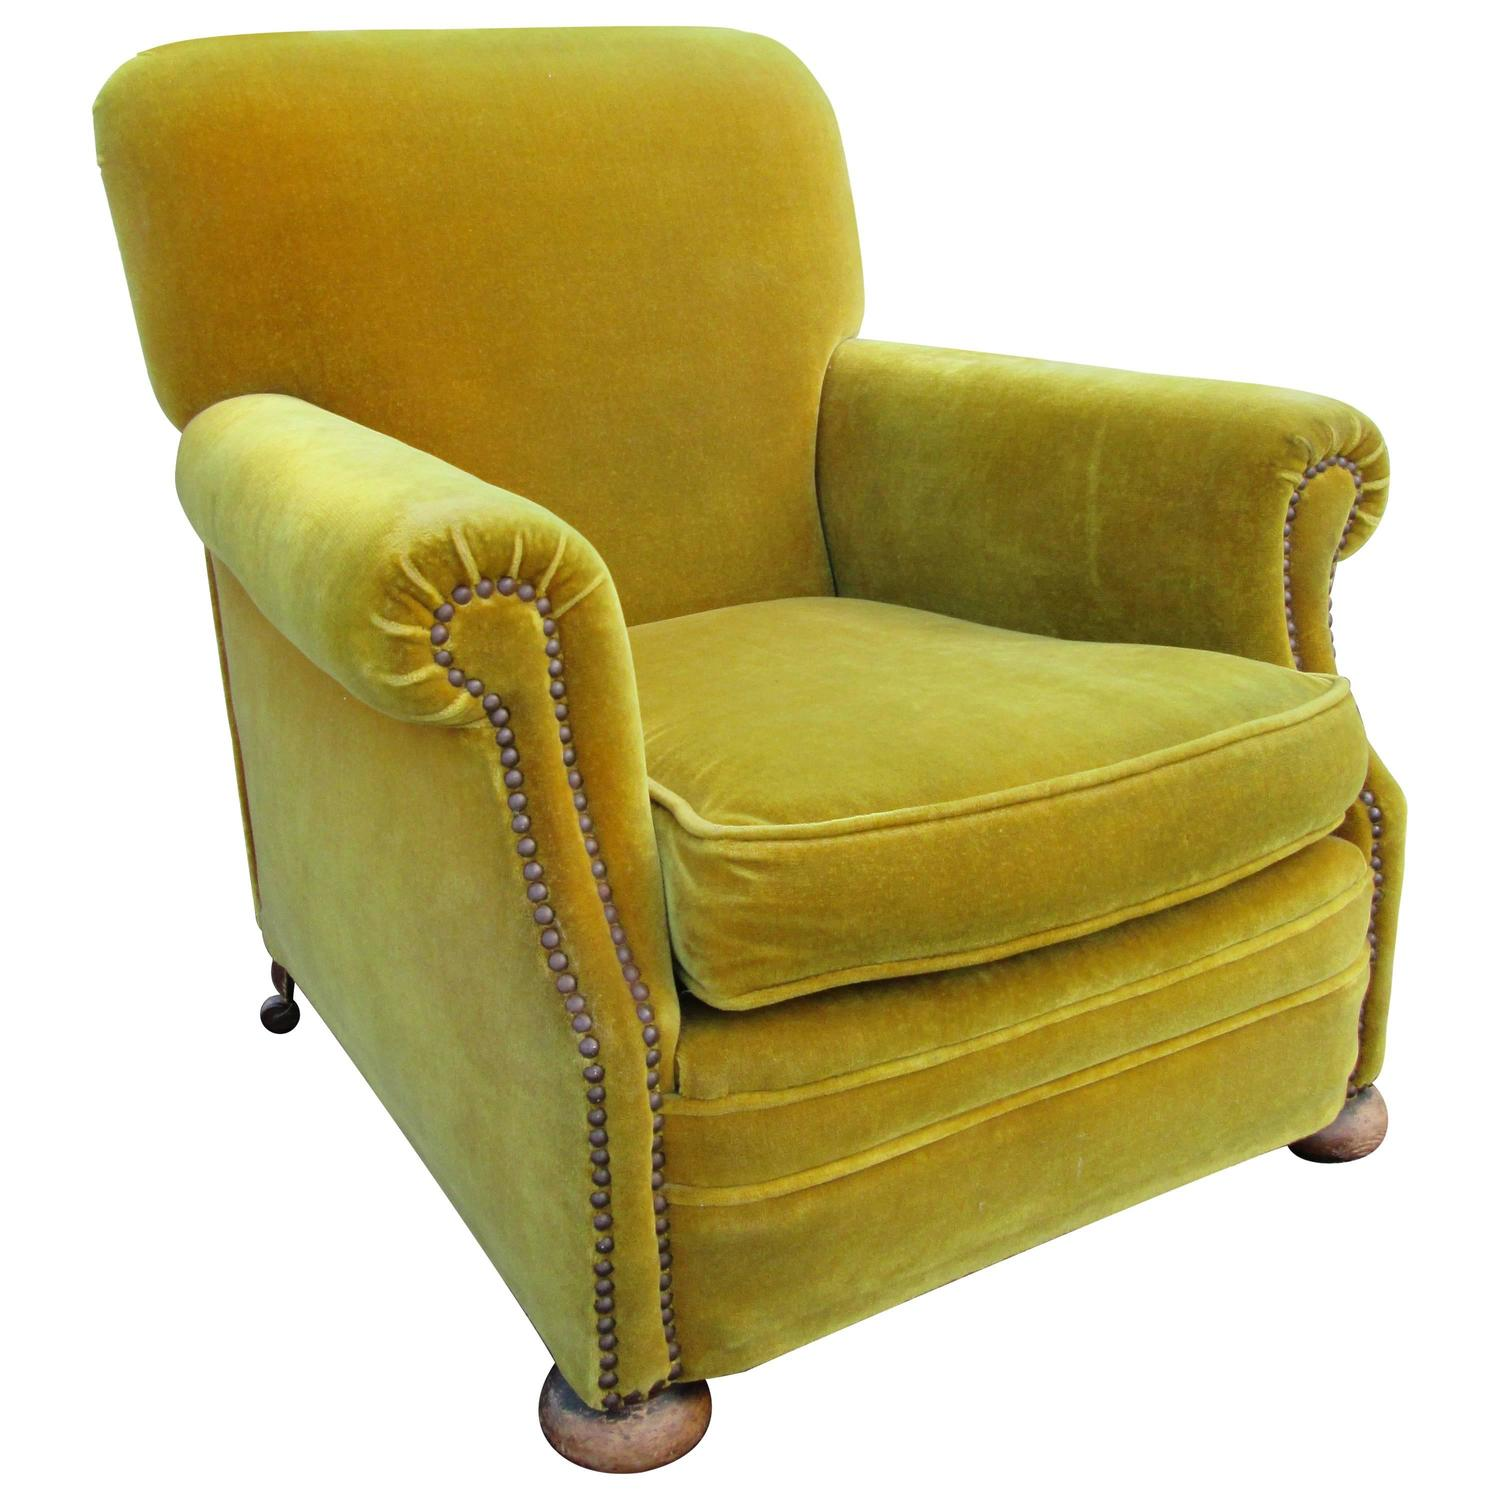 Velvet Club Chair Chartreuse Mohair Velvet Club Chair At 1stdibs